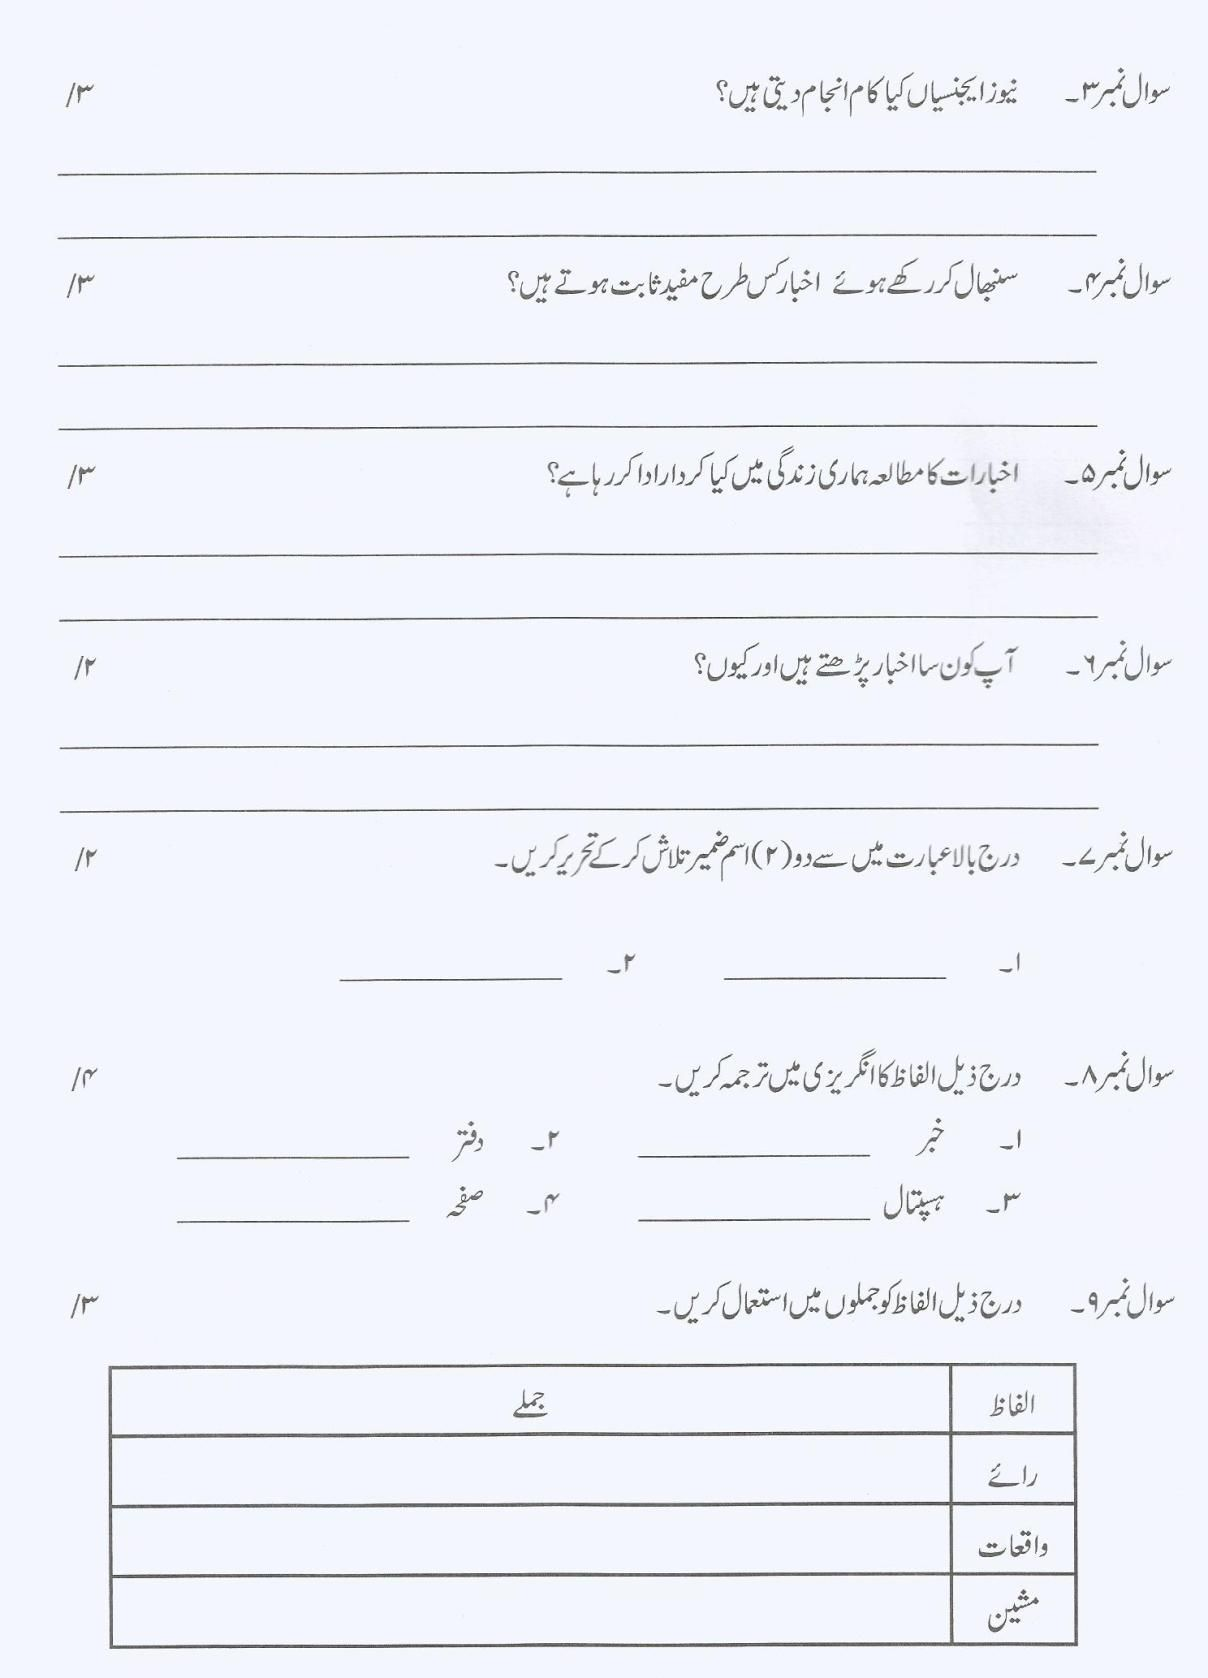 Urdu Tenses Worksheet For Grade 6   Printable Worksheets and Activities for  Teachers [ 1678 x 1208 Pixel ]